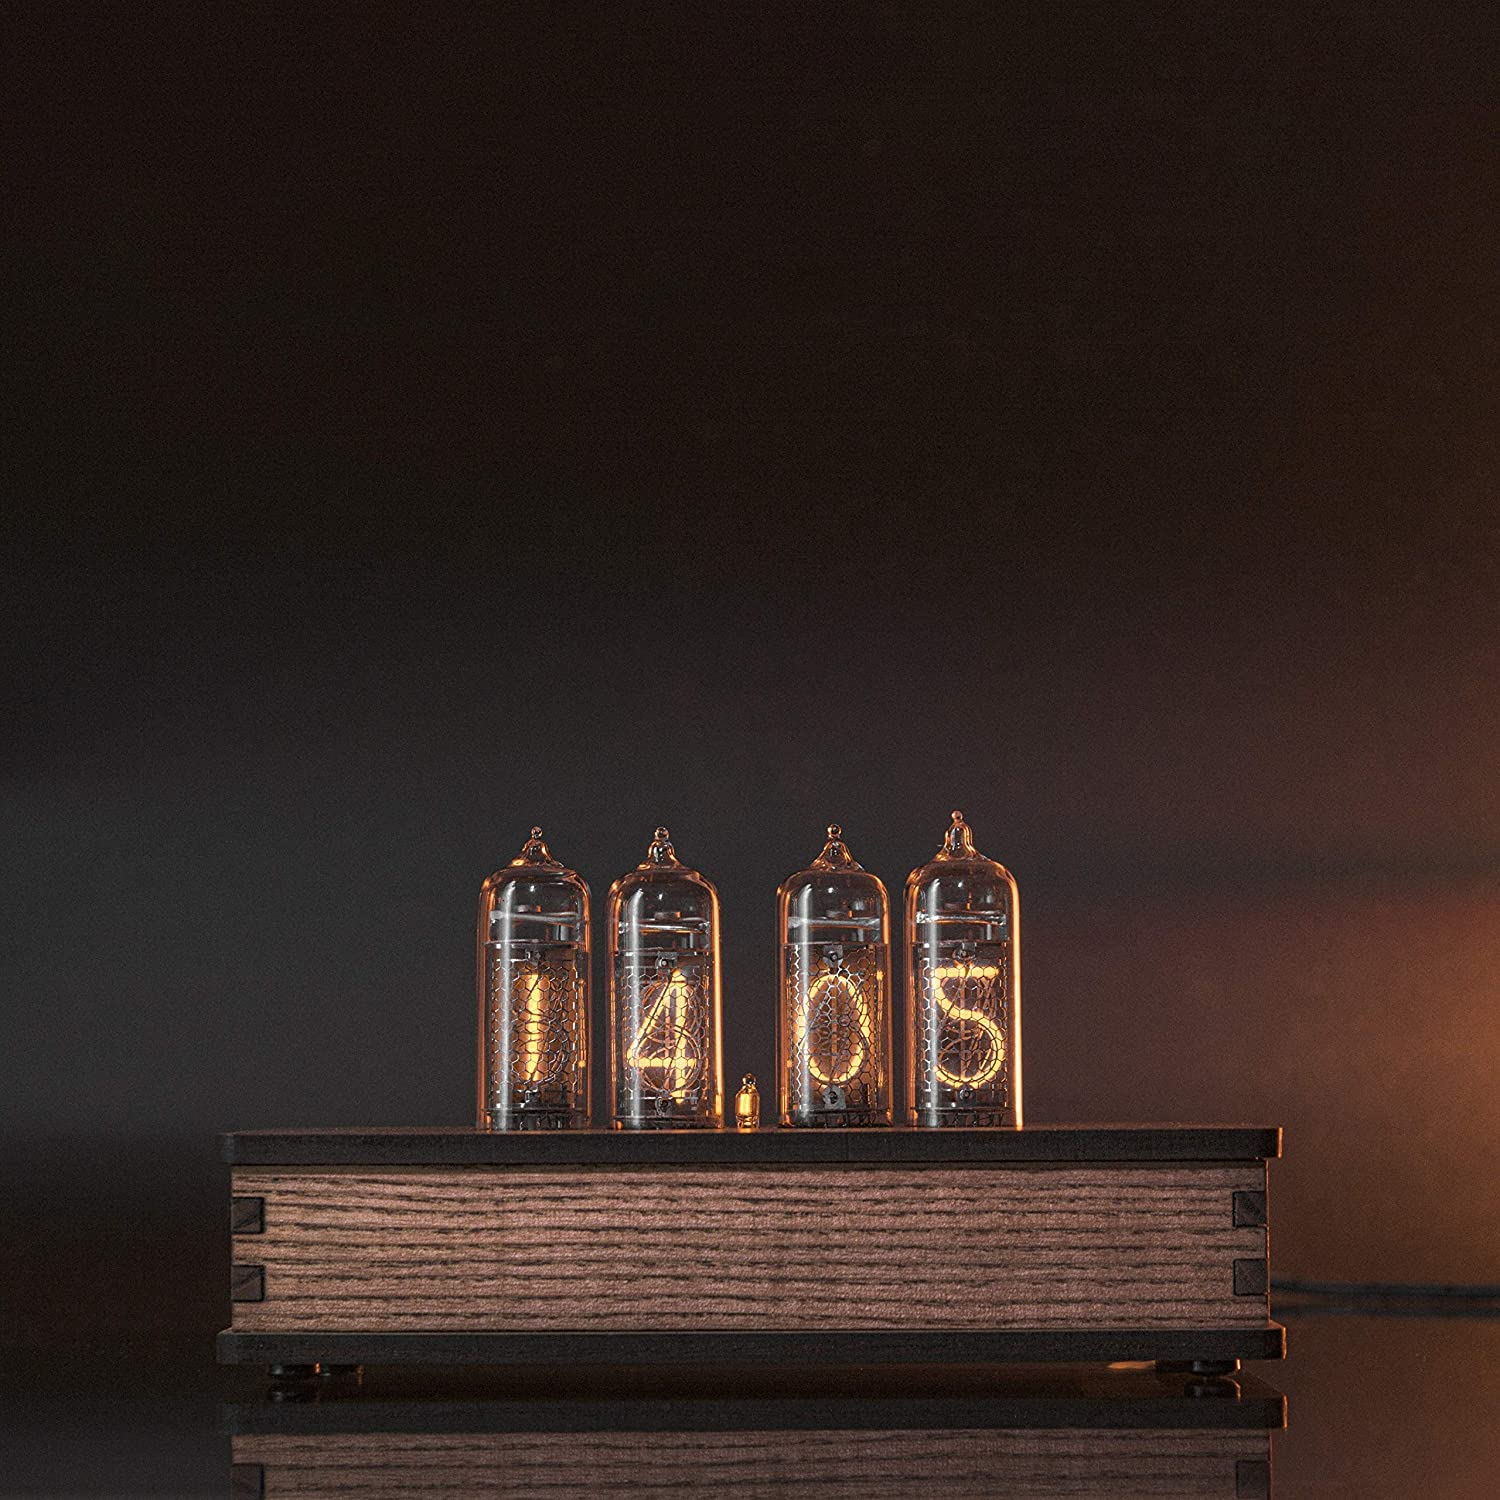 Nixie Dallas Mall Tube Clock with High quality Easy IN-14 Tubes Replaceable - Motio